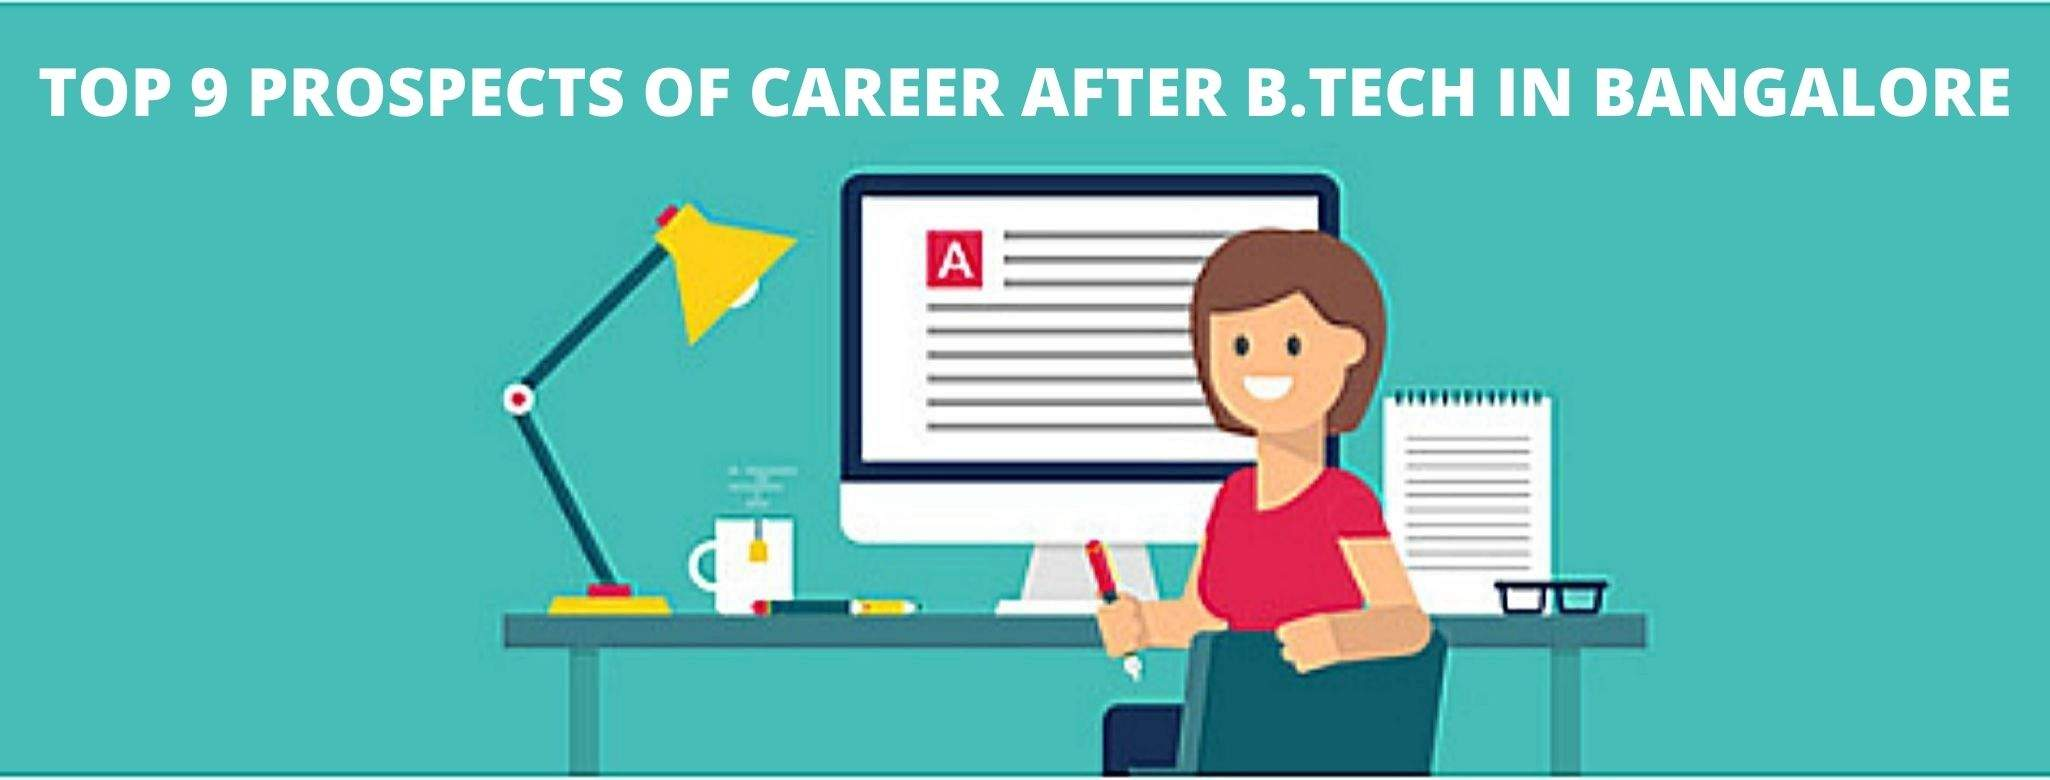 Top 9 Prospects Of Career After B Tech In Bangalore Iim Skills